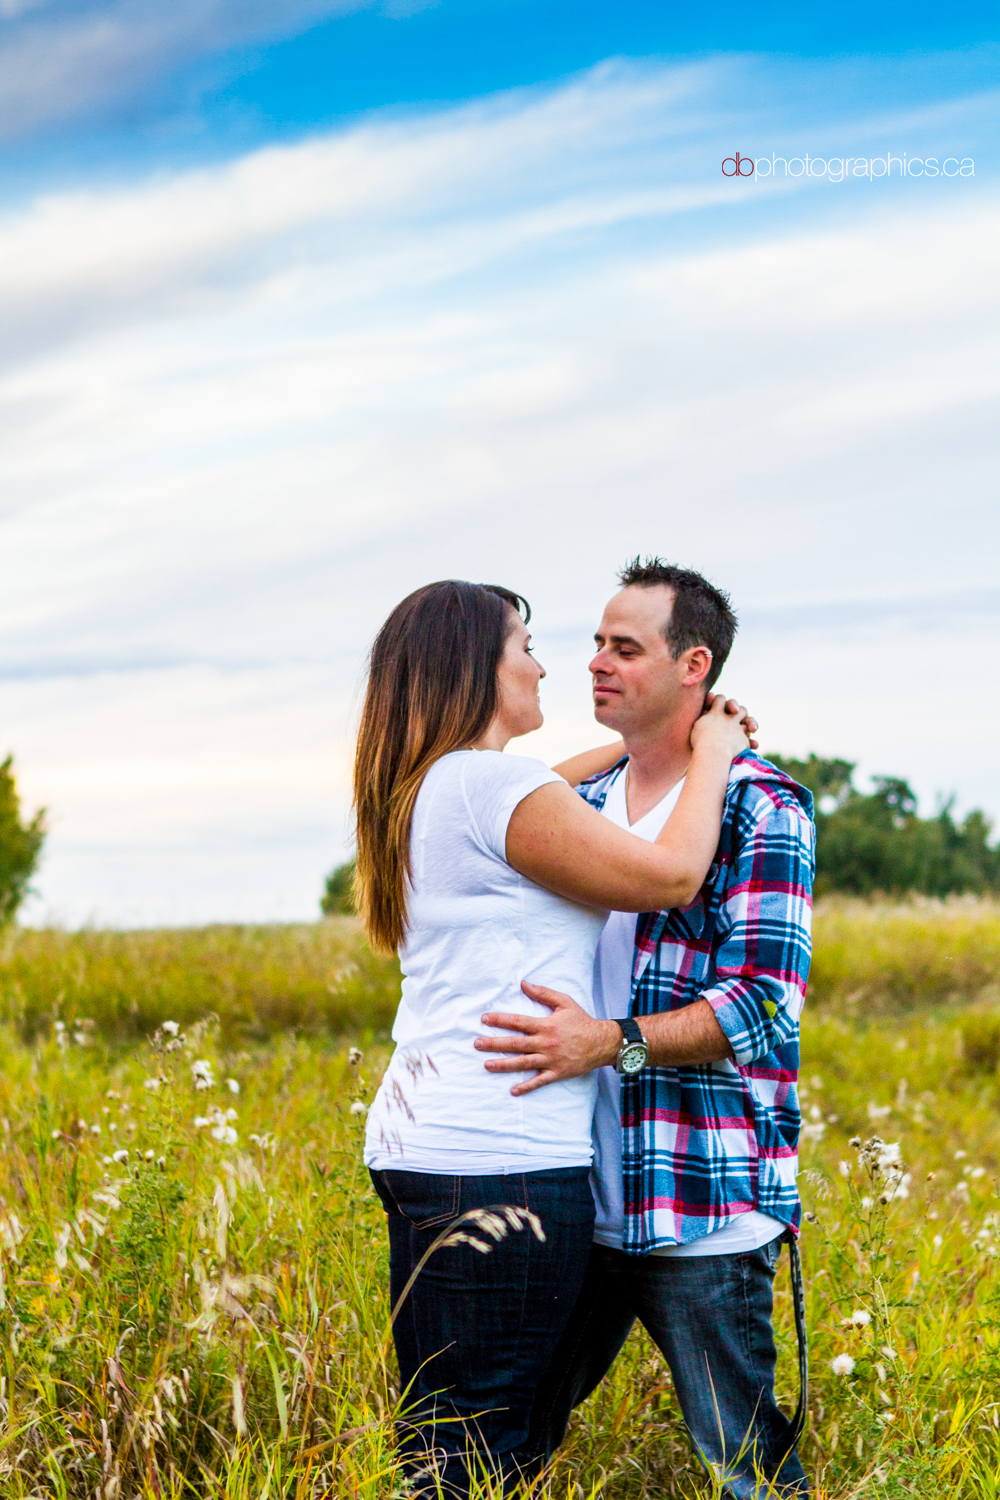 Rob & Alicia Engagement Shoot - 20130922 - 0055.jpg